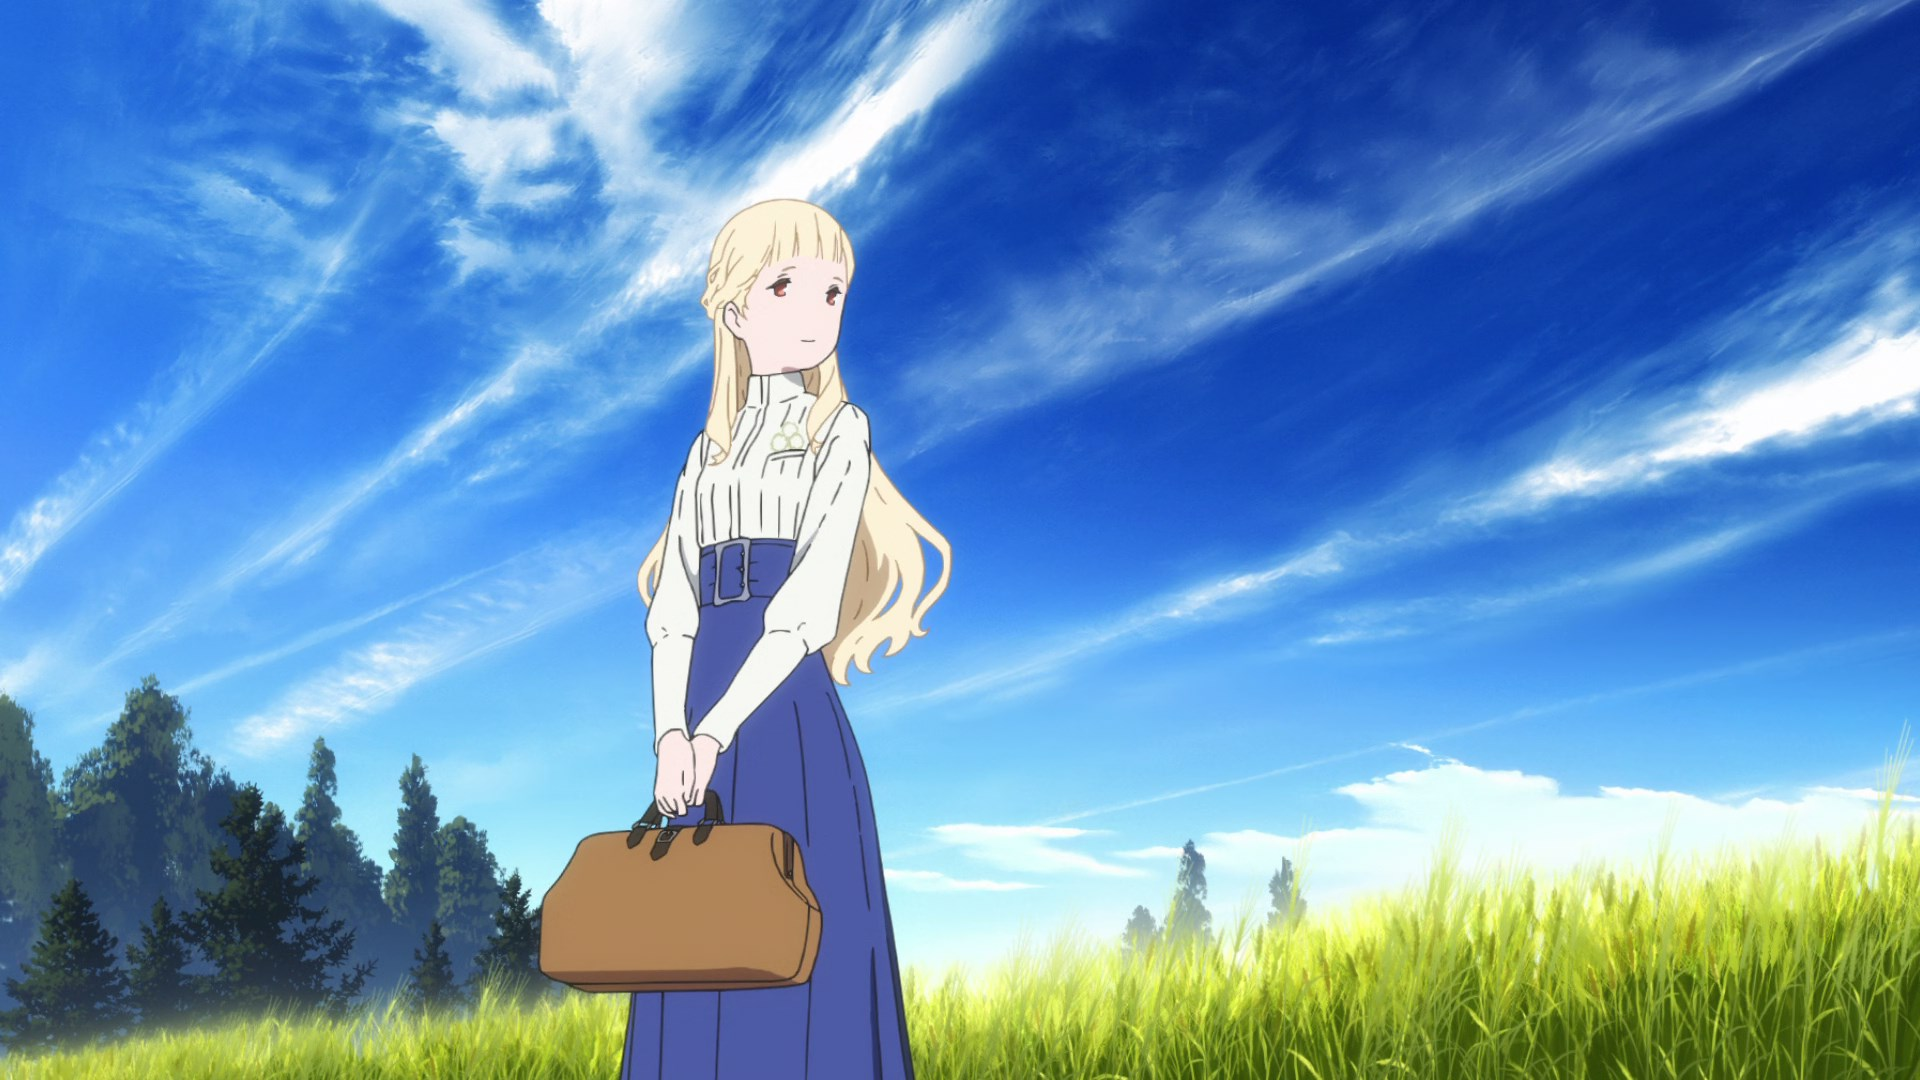 Featured image for Maquia and the Beauty of Parting